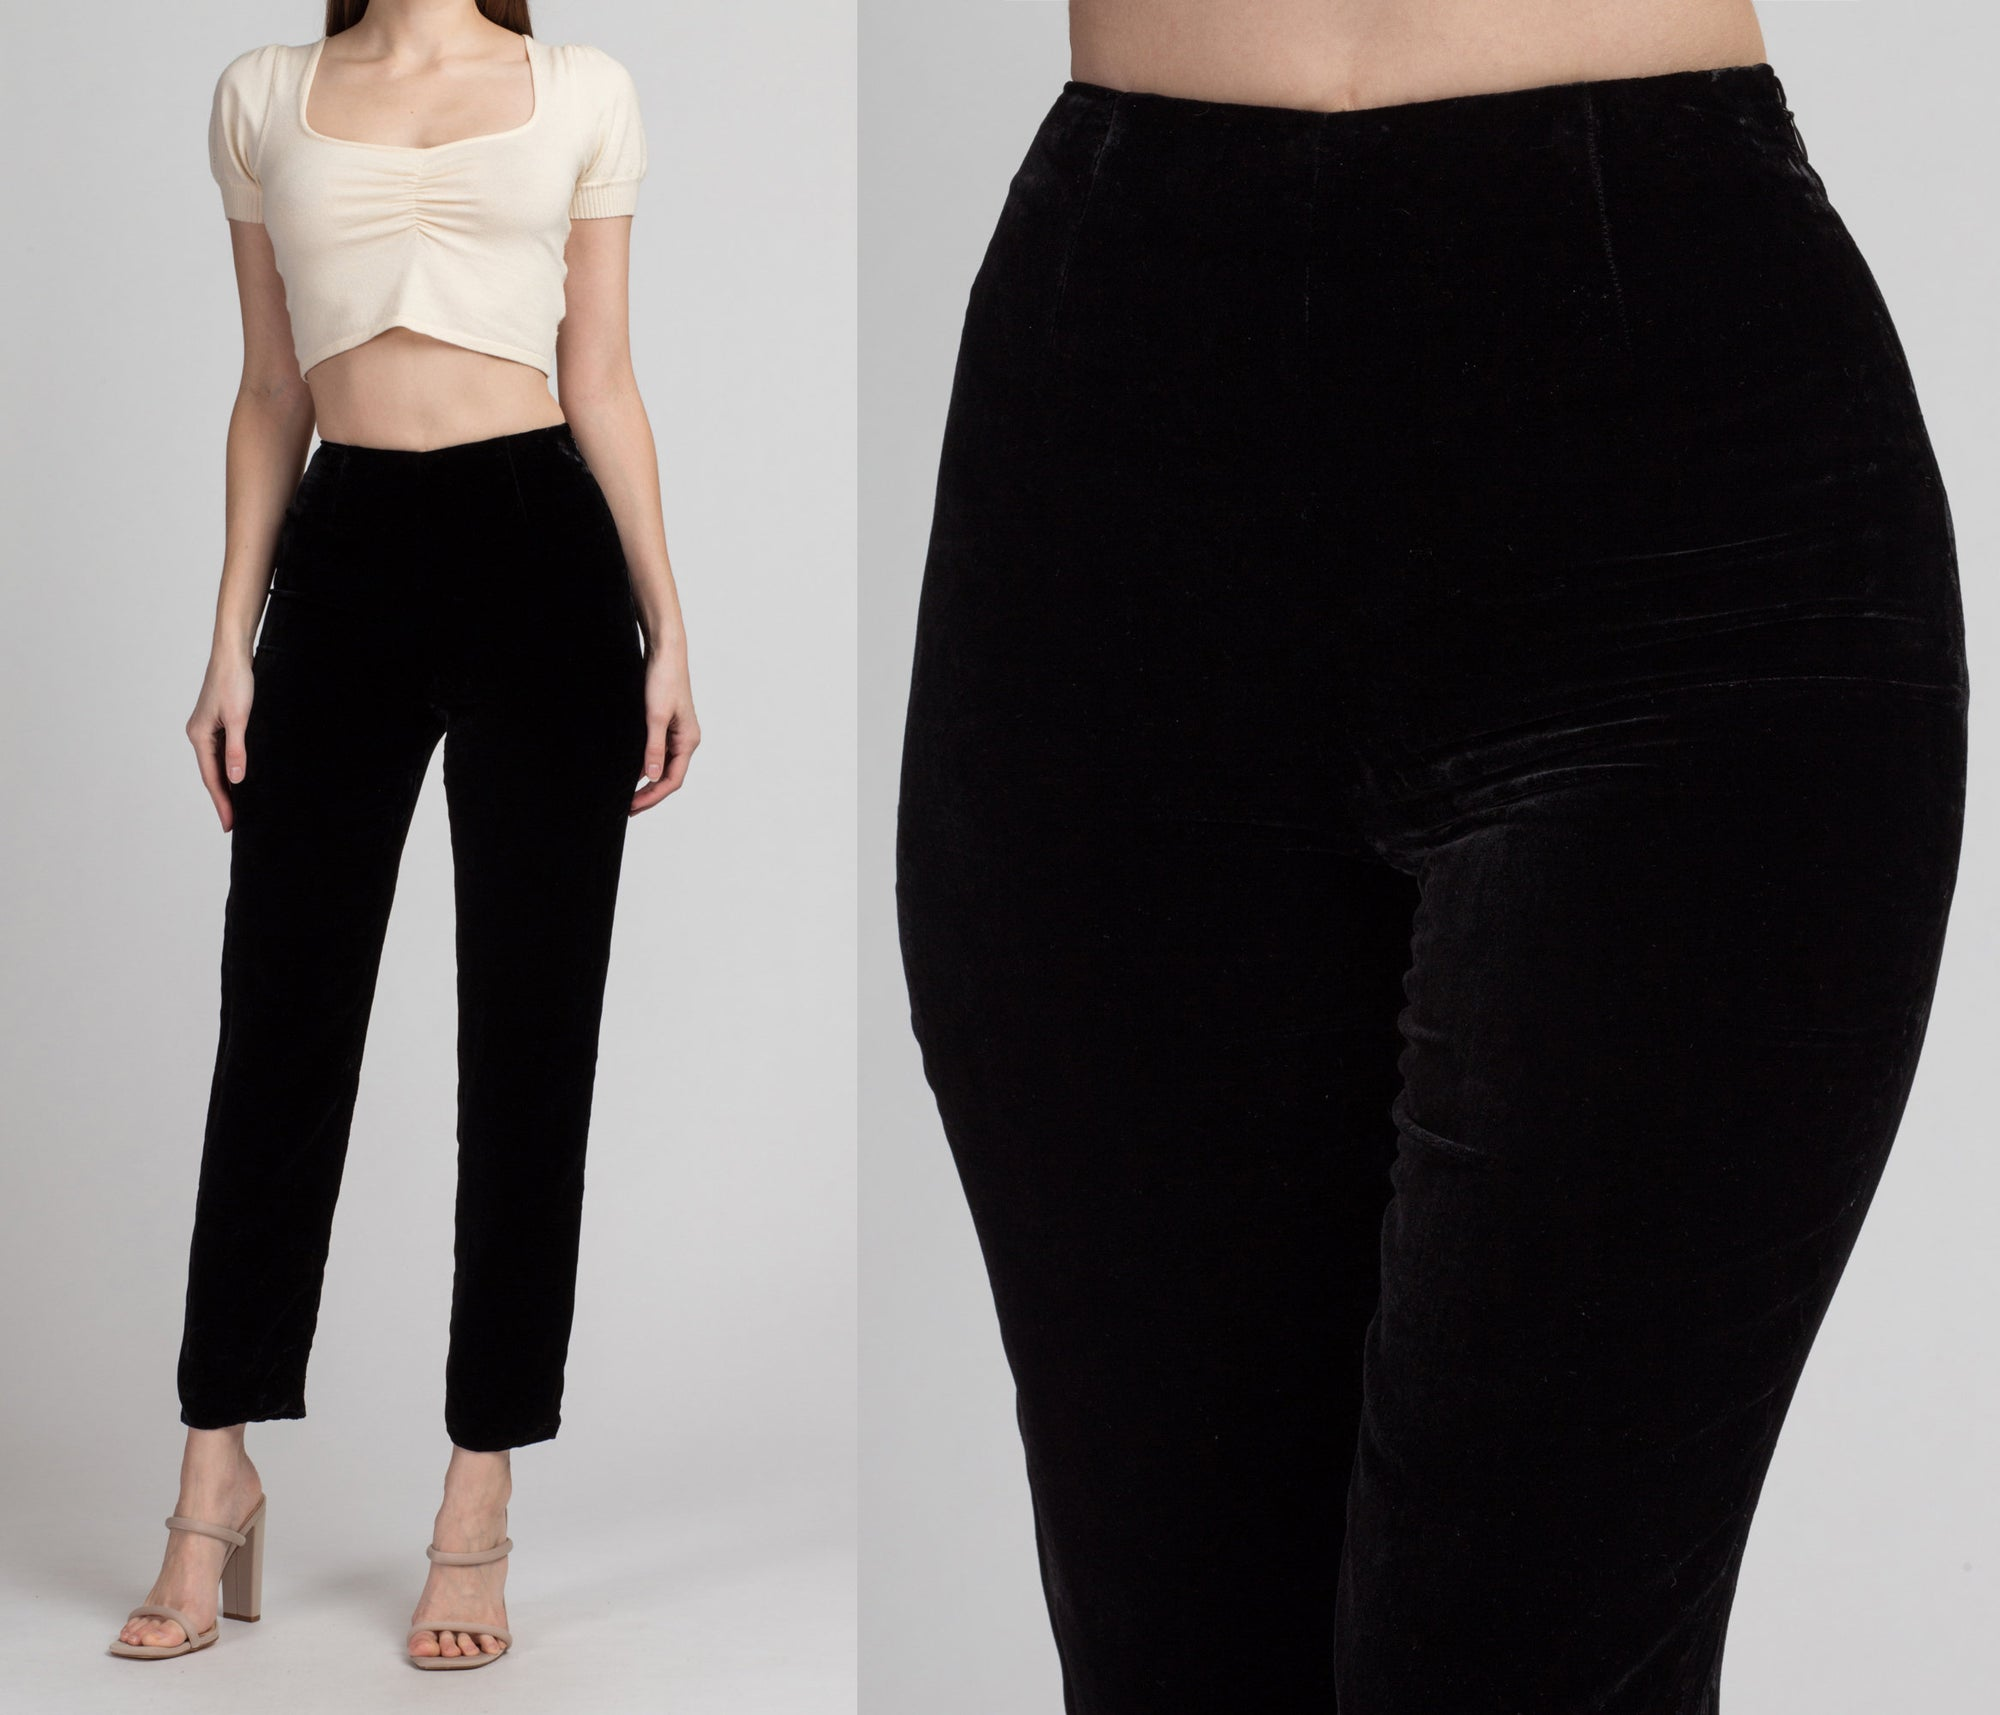 90s Black Velvet High Waist Pants - Extra Small | Vintage Slim Tapered High Rise Trousers